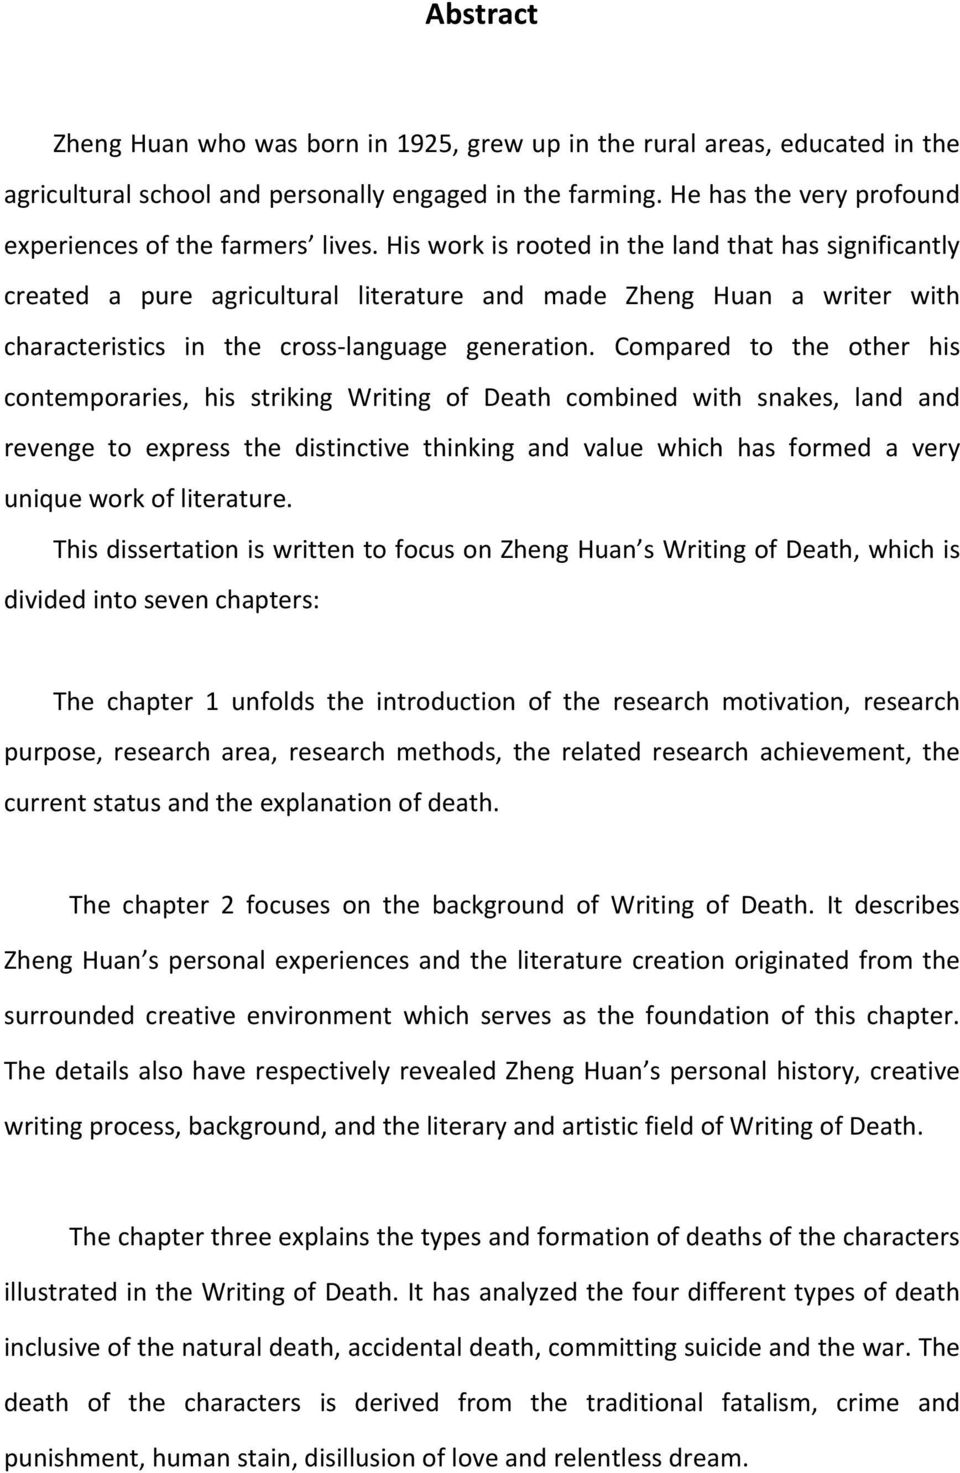 His work is rooted in the land that has significantly created a pure agricultural literature and made Zheng Huan a writer with characteristics in the cross- language generation.